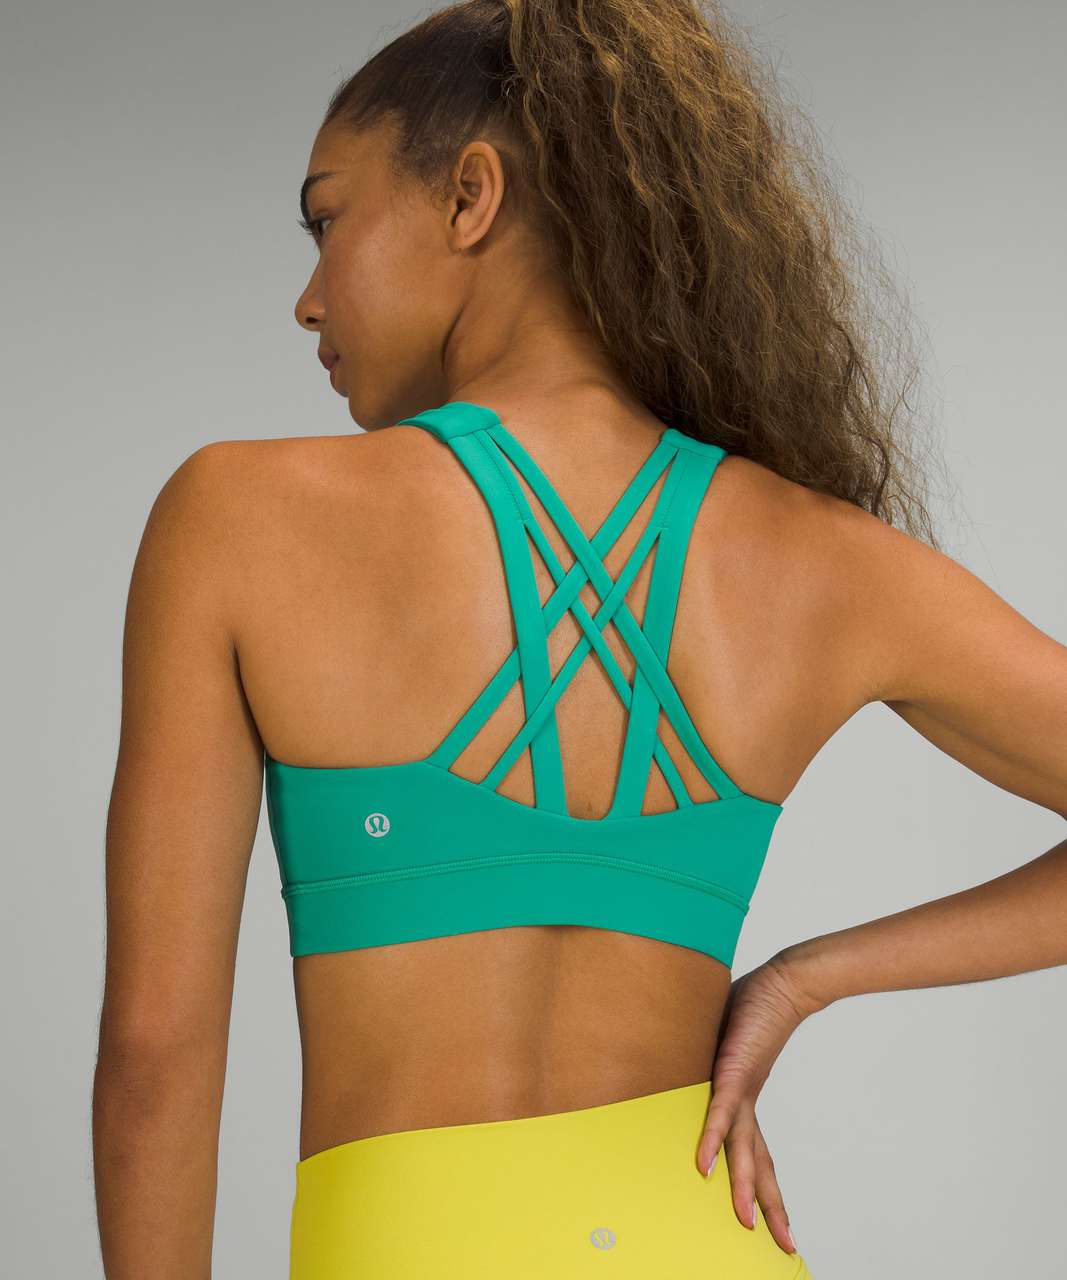 Lululemon Free To Be Elevated Bra *Light Support, DD/E Cup - Maldives Green